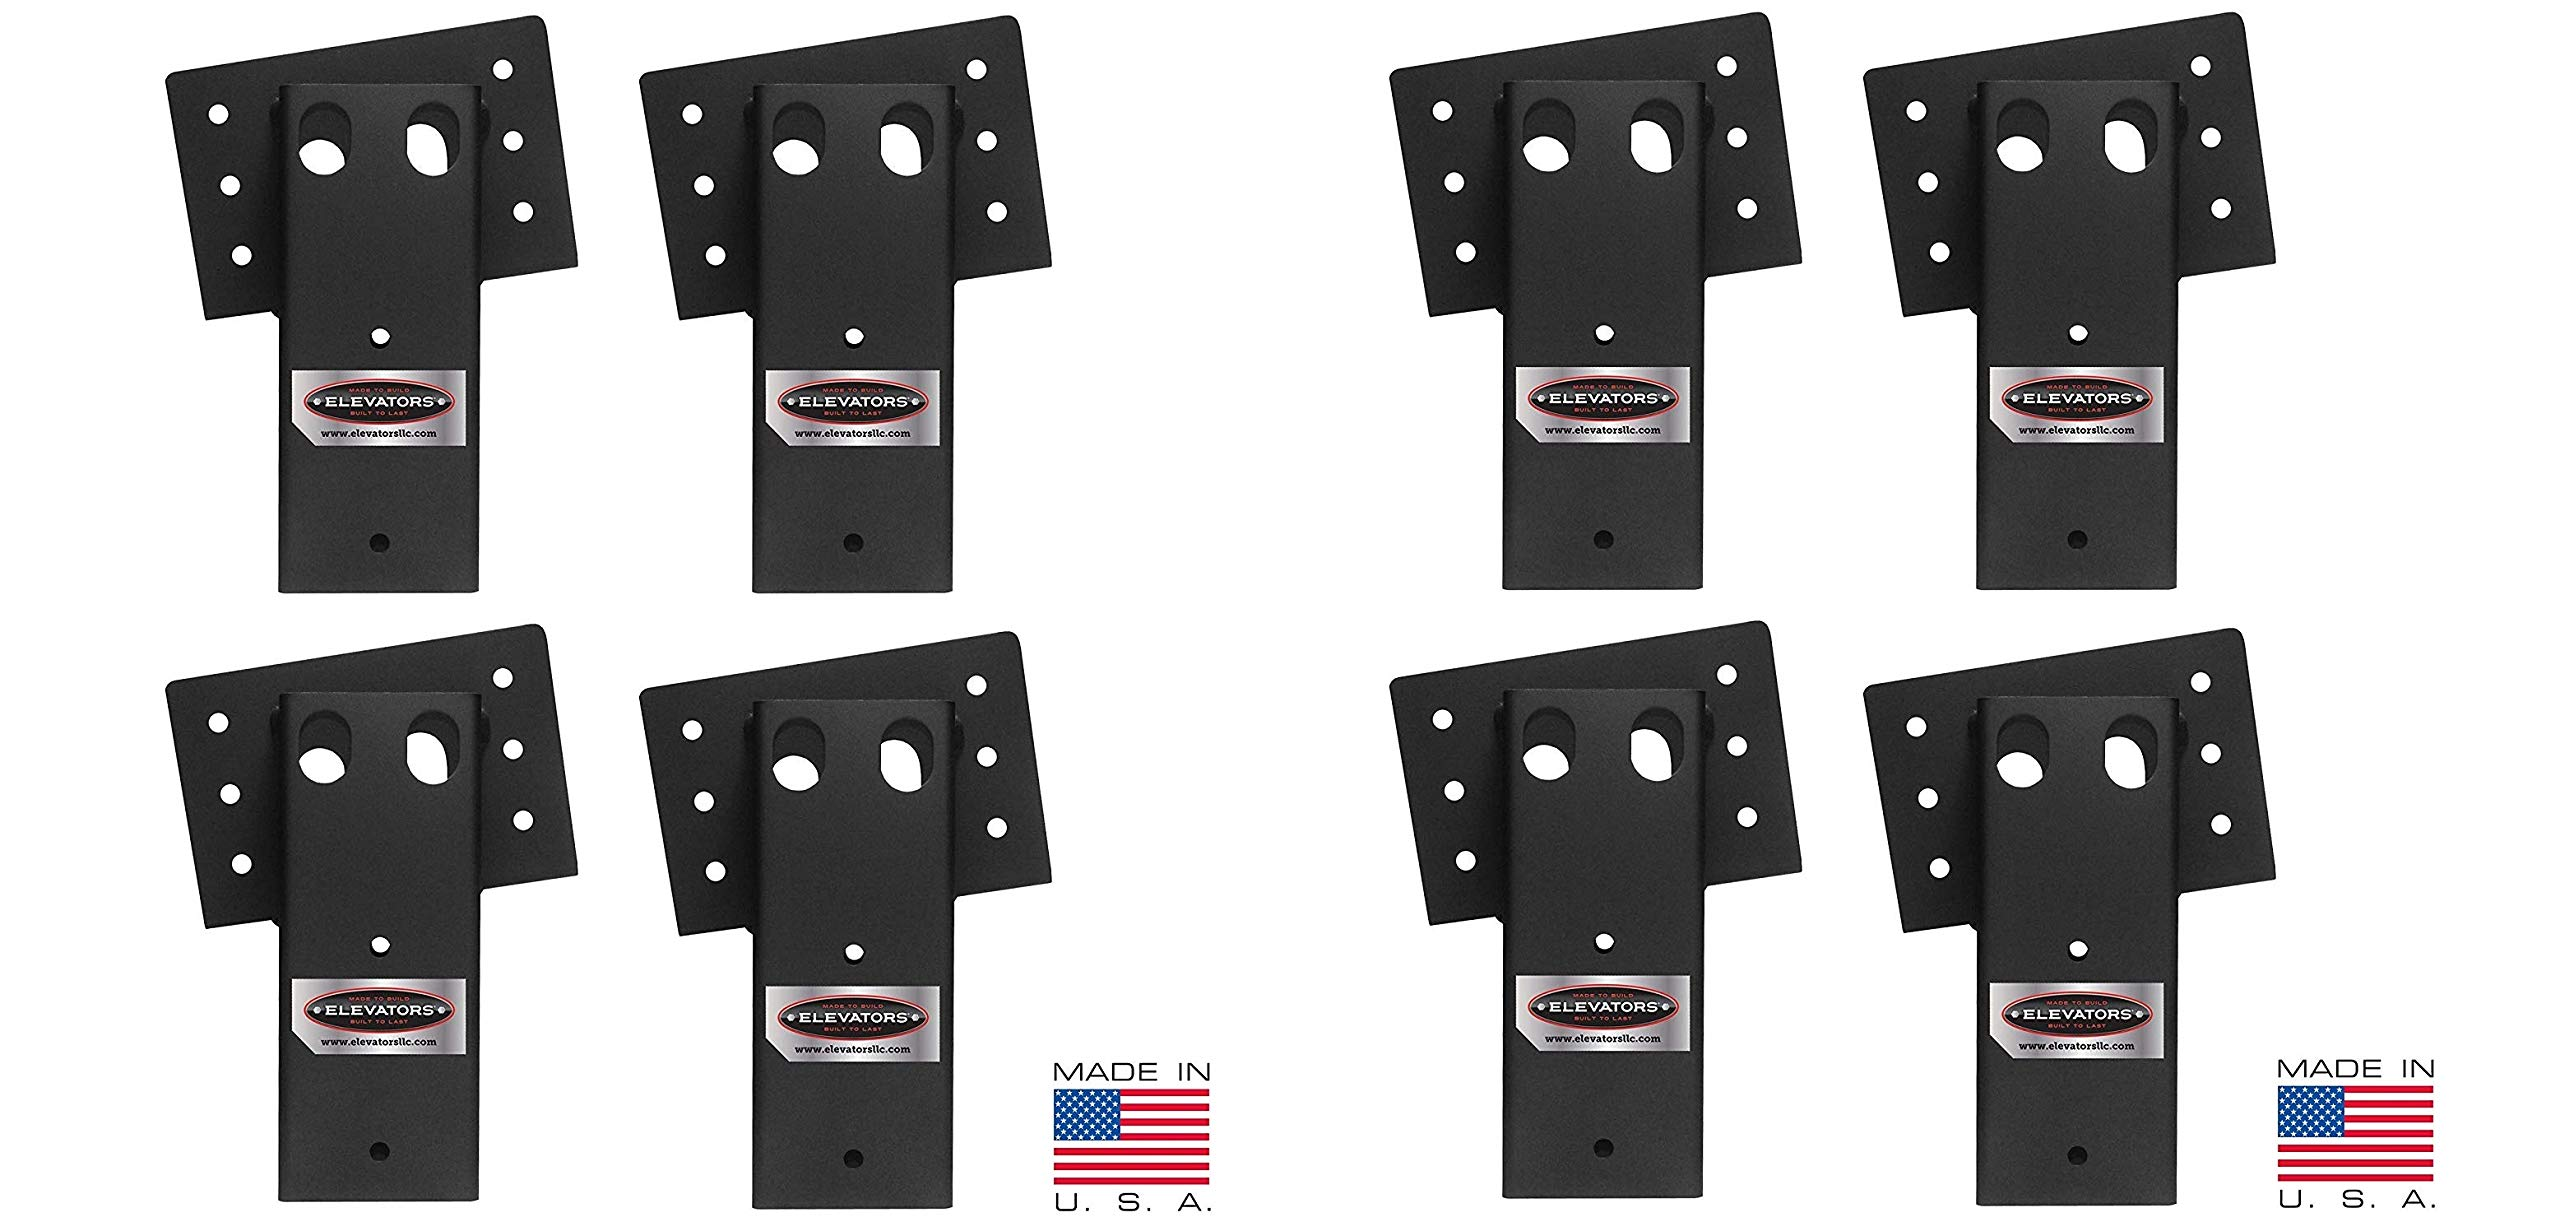 Elevators 4x4 Brackets for Deer Blinds, Playhouses, Swing Sets, Tree Houses. Made in The USA with Premium Construction Grade Steel (2 X Pack of 4)